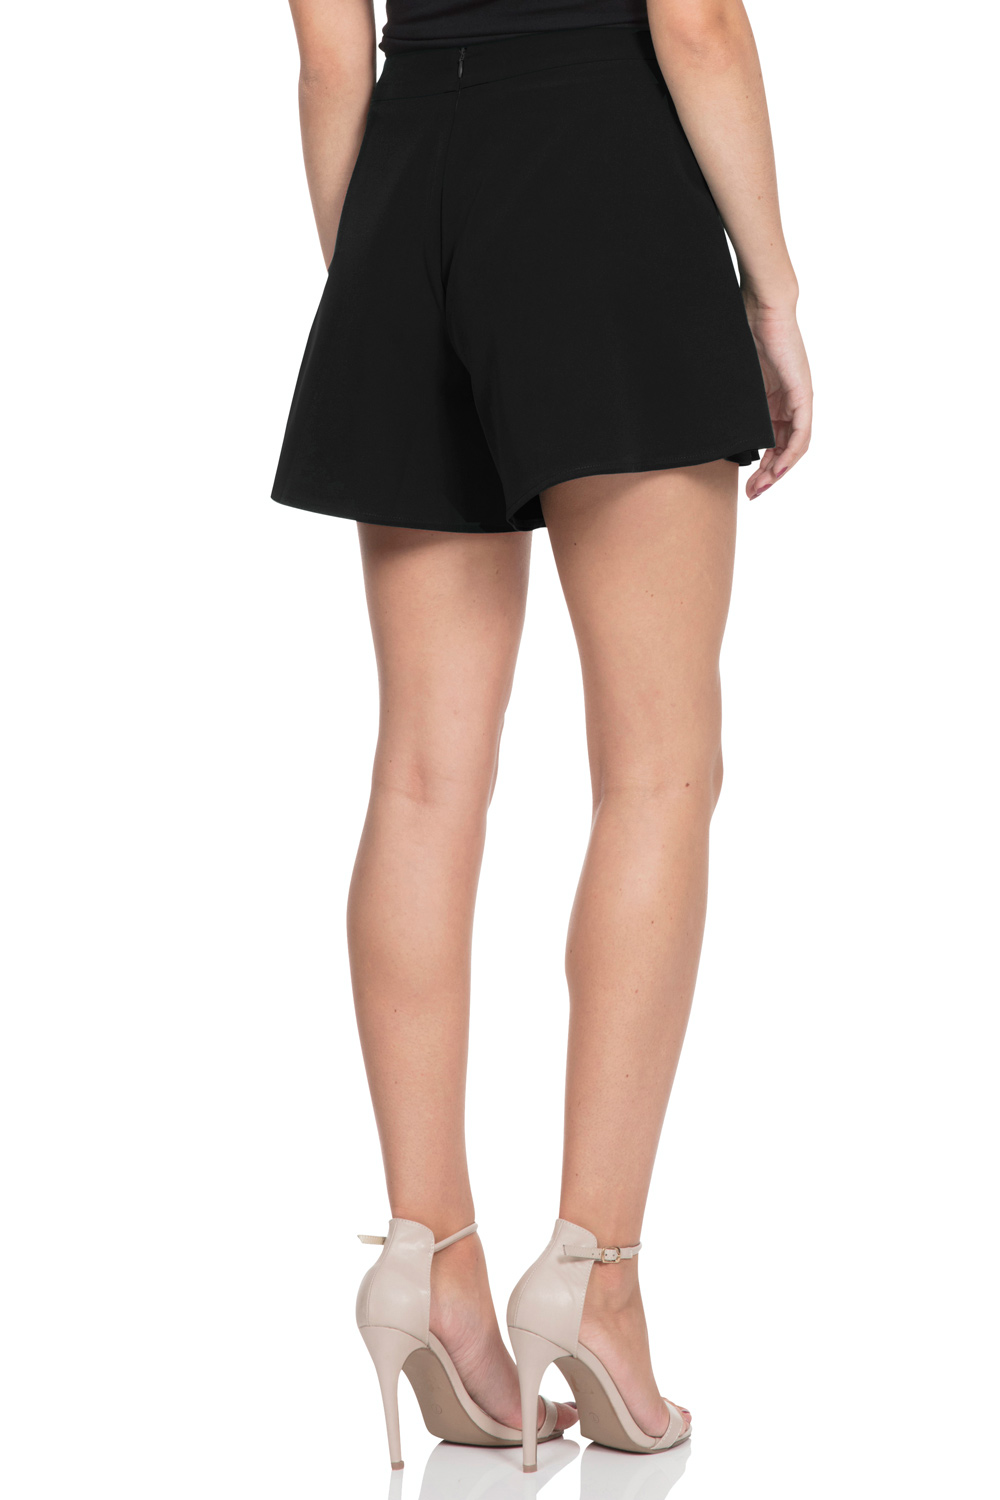 Mary Black Swing Shorts